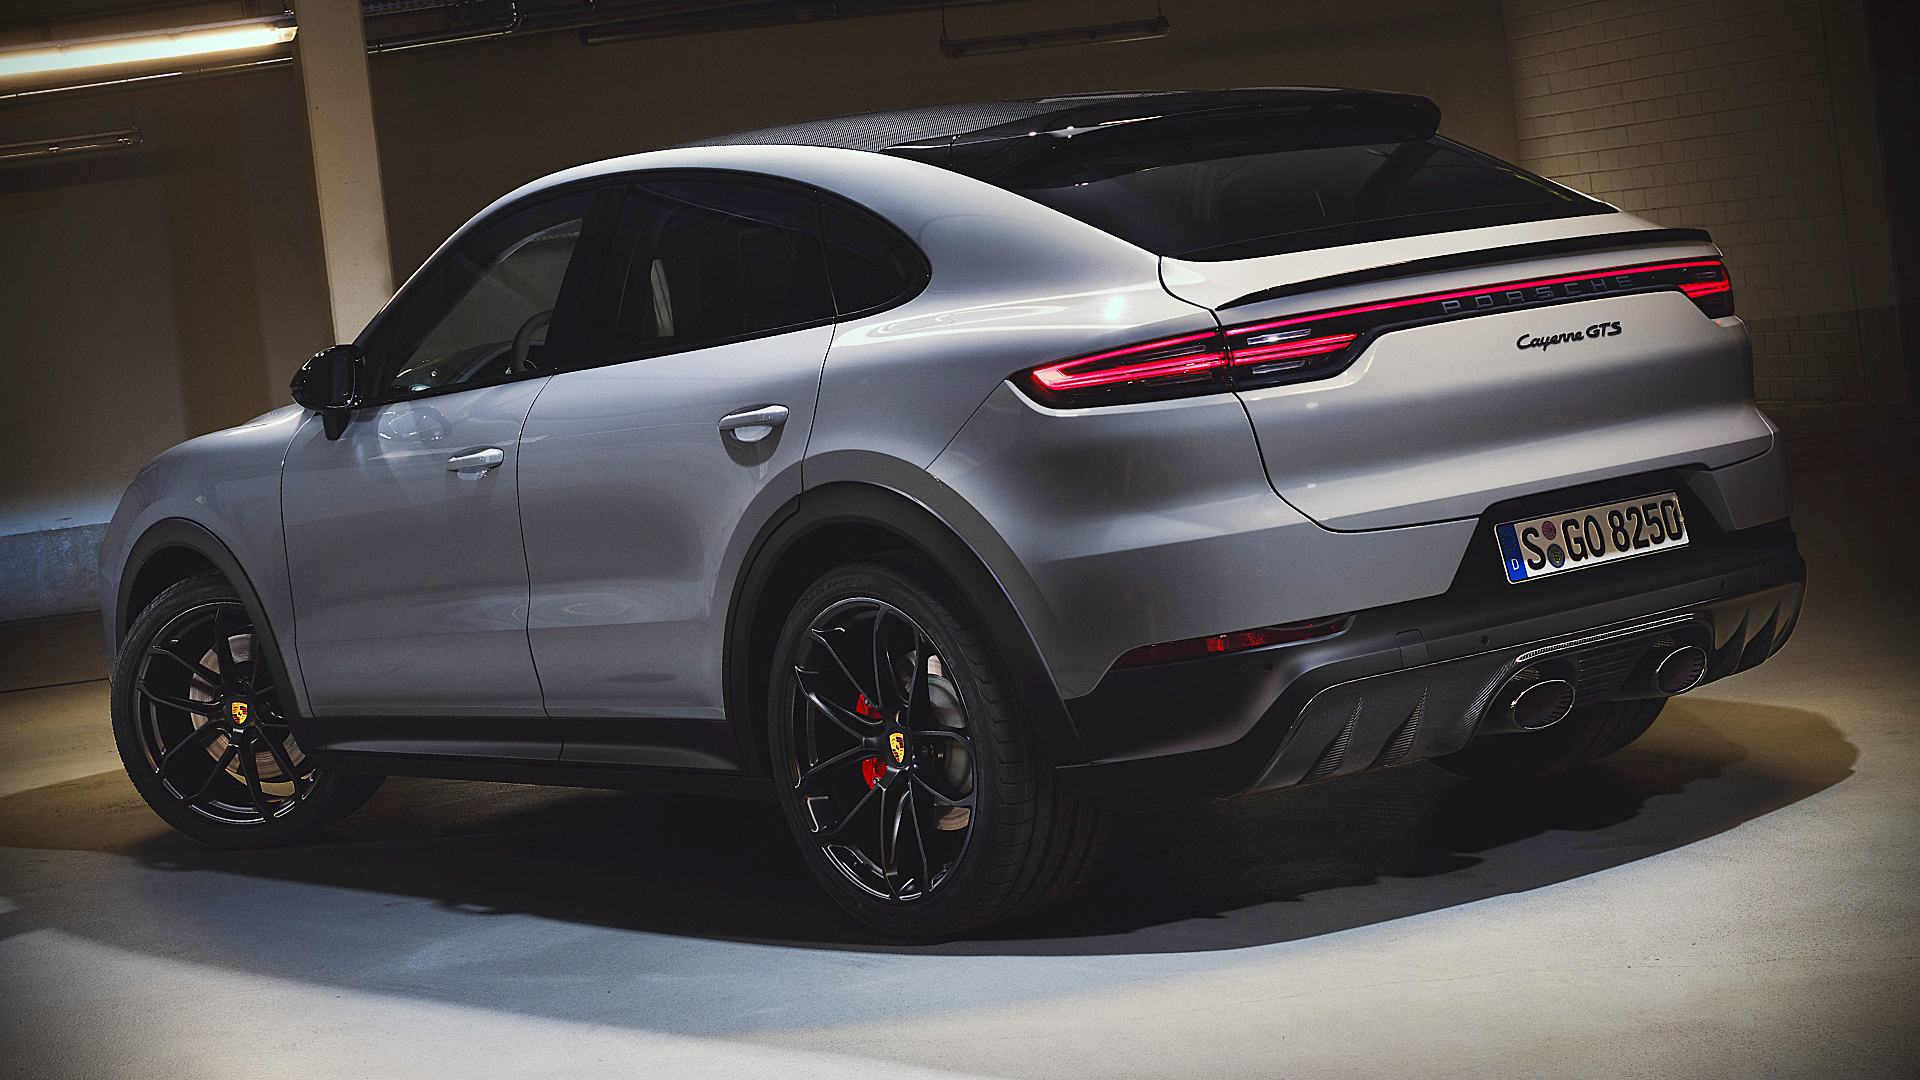 2021 Porsche GTS Cayenne Coupe Pictures